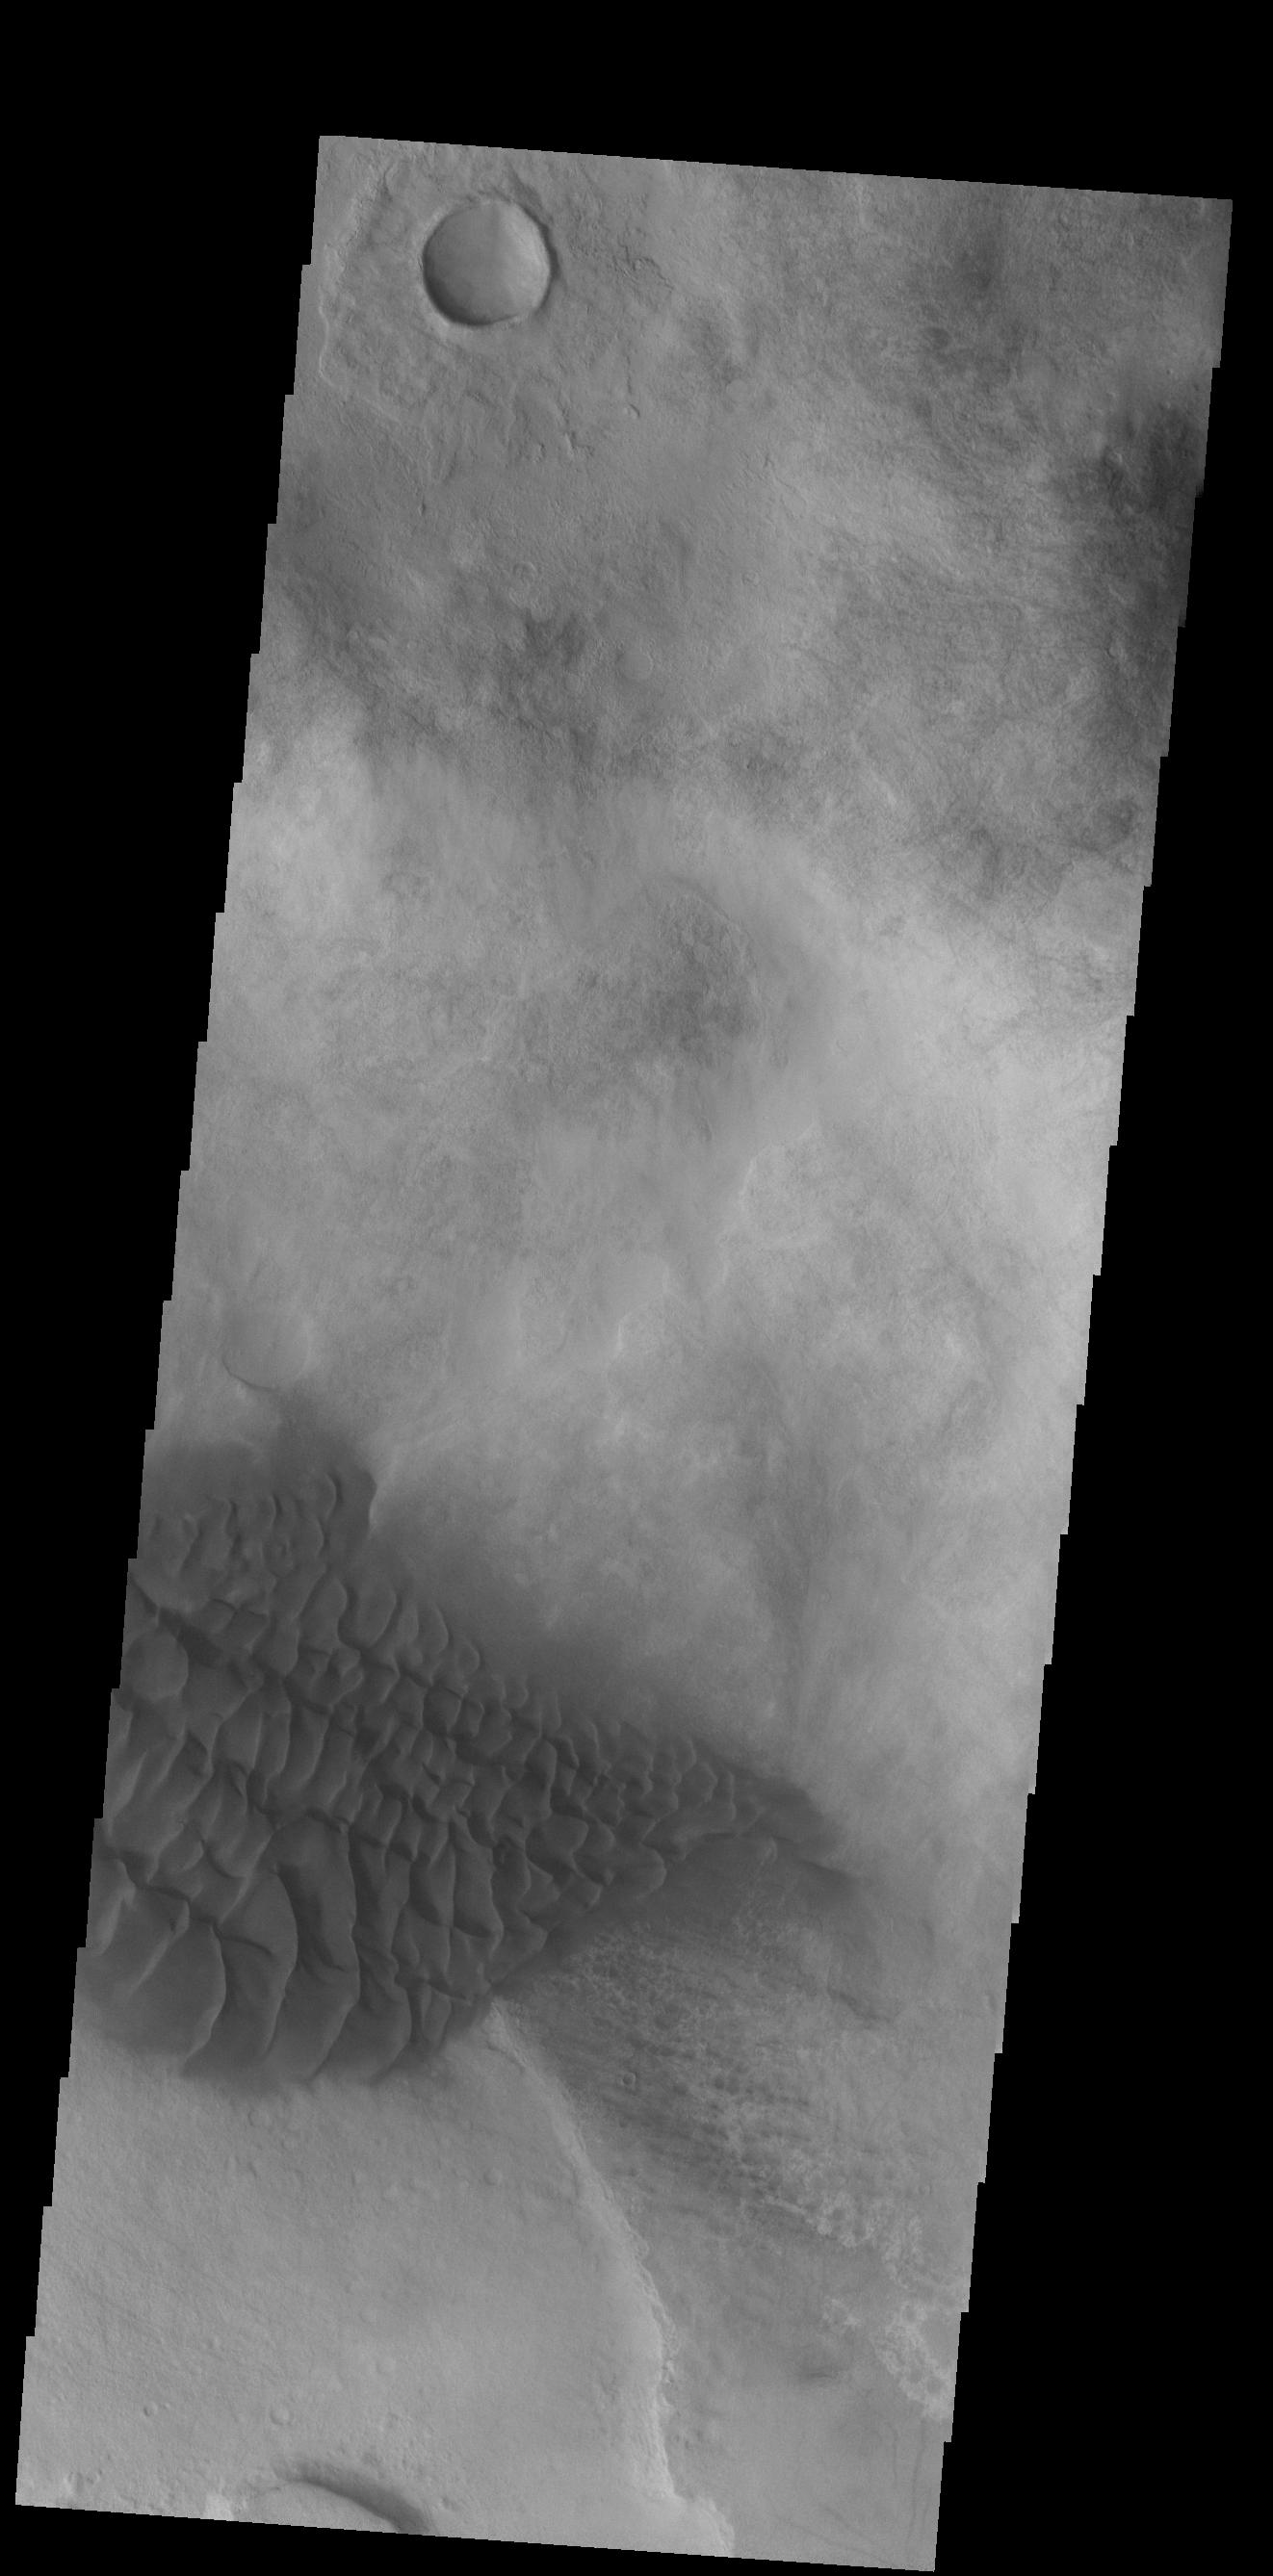 This image from NASAs Mars Odyssey shows Halley Crater, located on the western side of Argyre Planitia. Sand dunes cover part of the crater floor.